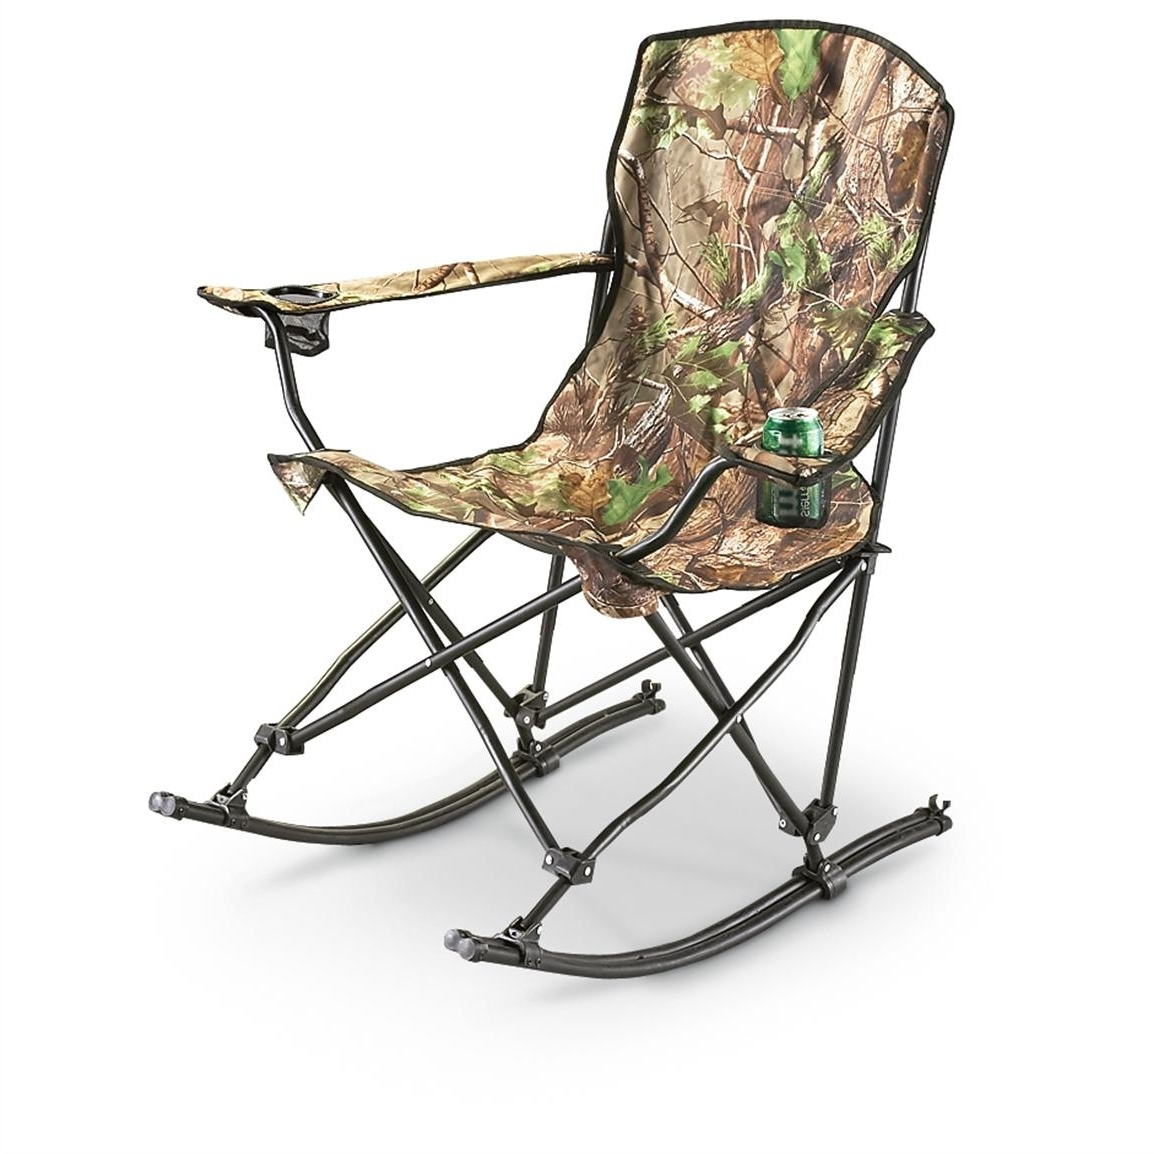 Stansport™ Team Realtree® Folding Rocking Chair – 178647, Chairs At Pertaining To Trendy Folding Rocking Chairs (View 15 of 20)